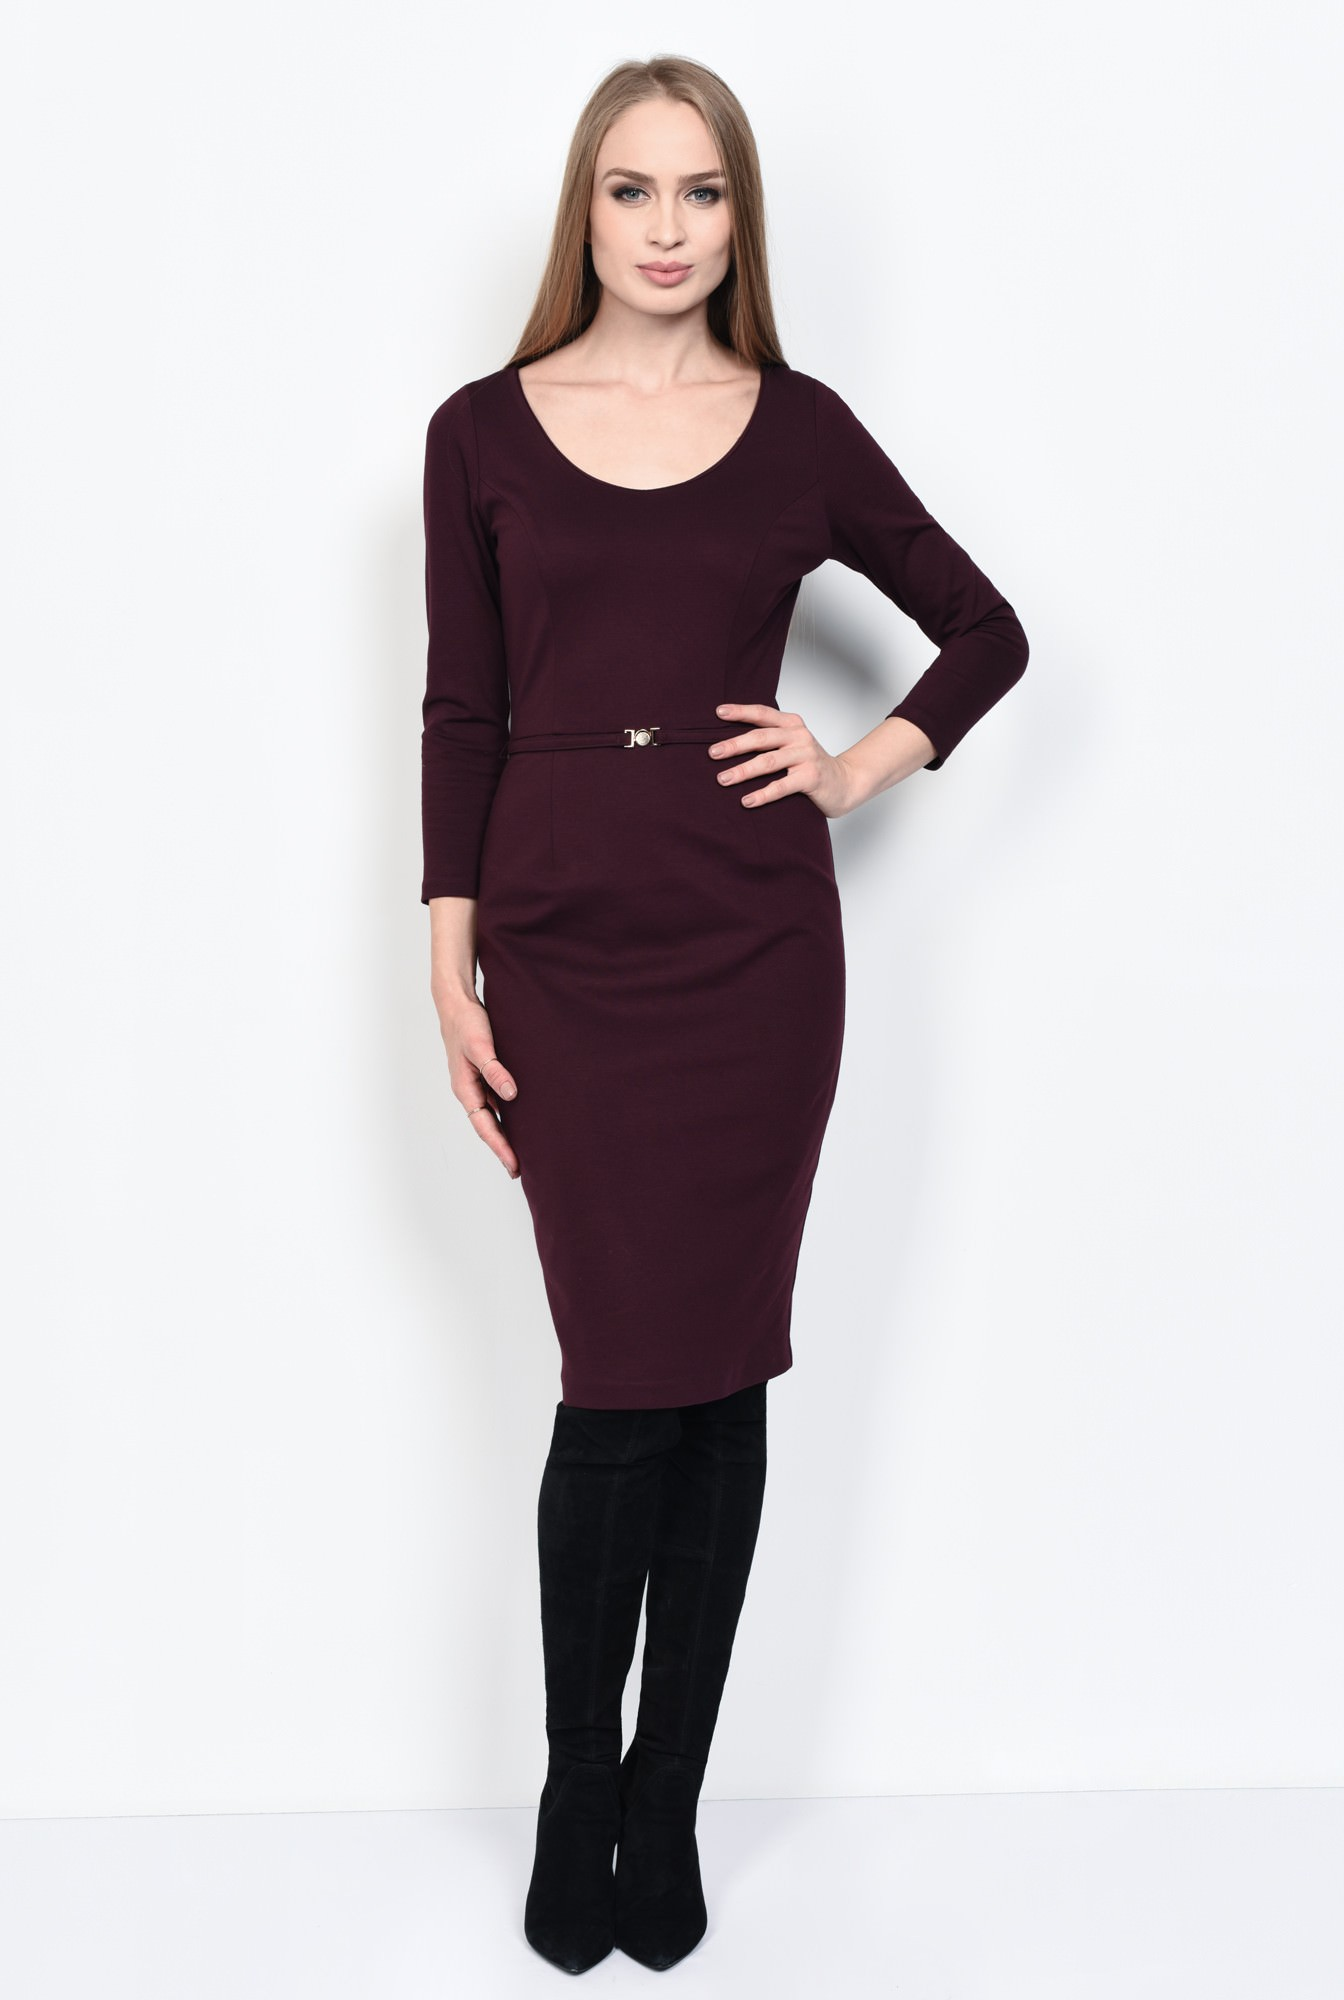 3 - ROCHIE OFFICE CONICA R 176-BURGUNDY